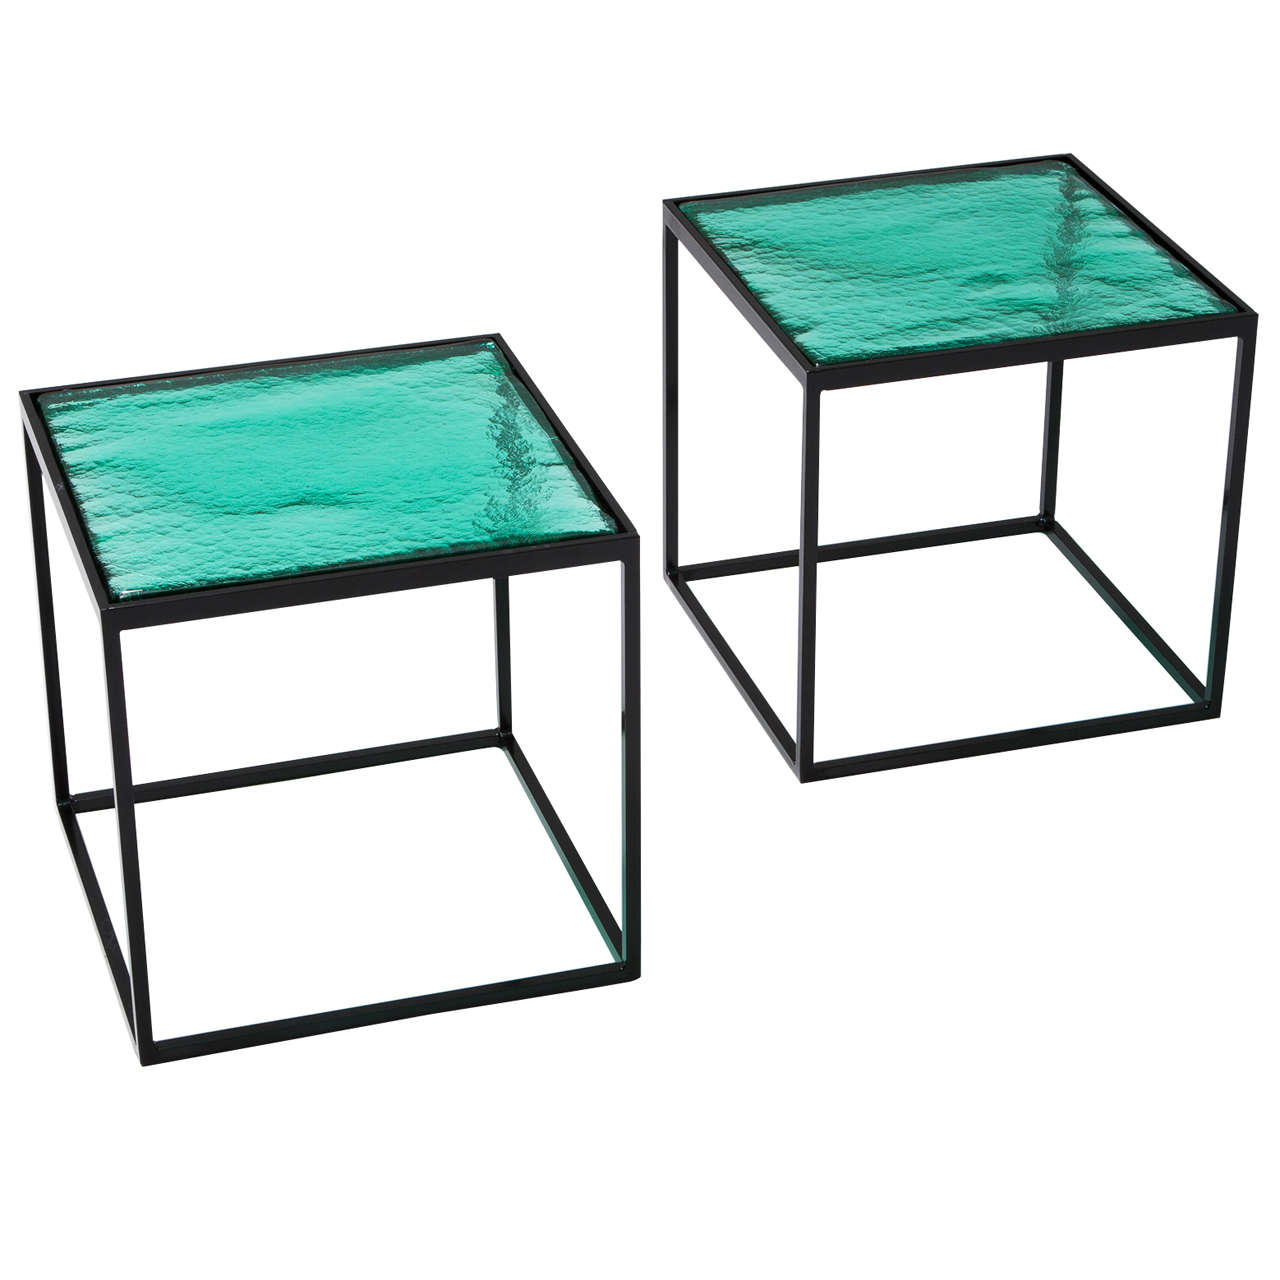 Multiple Green Coloured Gl Side Tables With Metal Box Frame